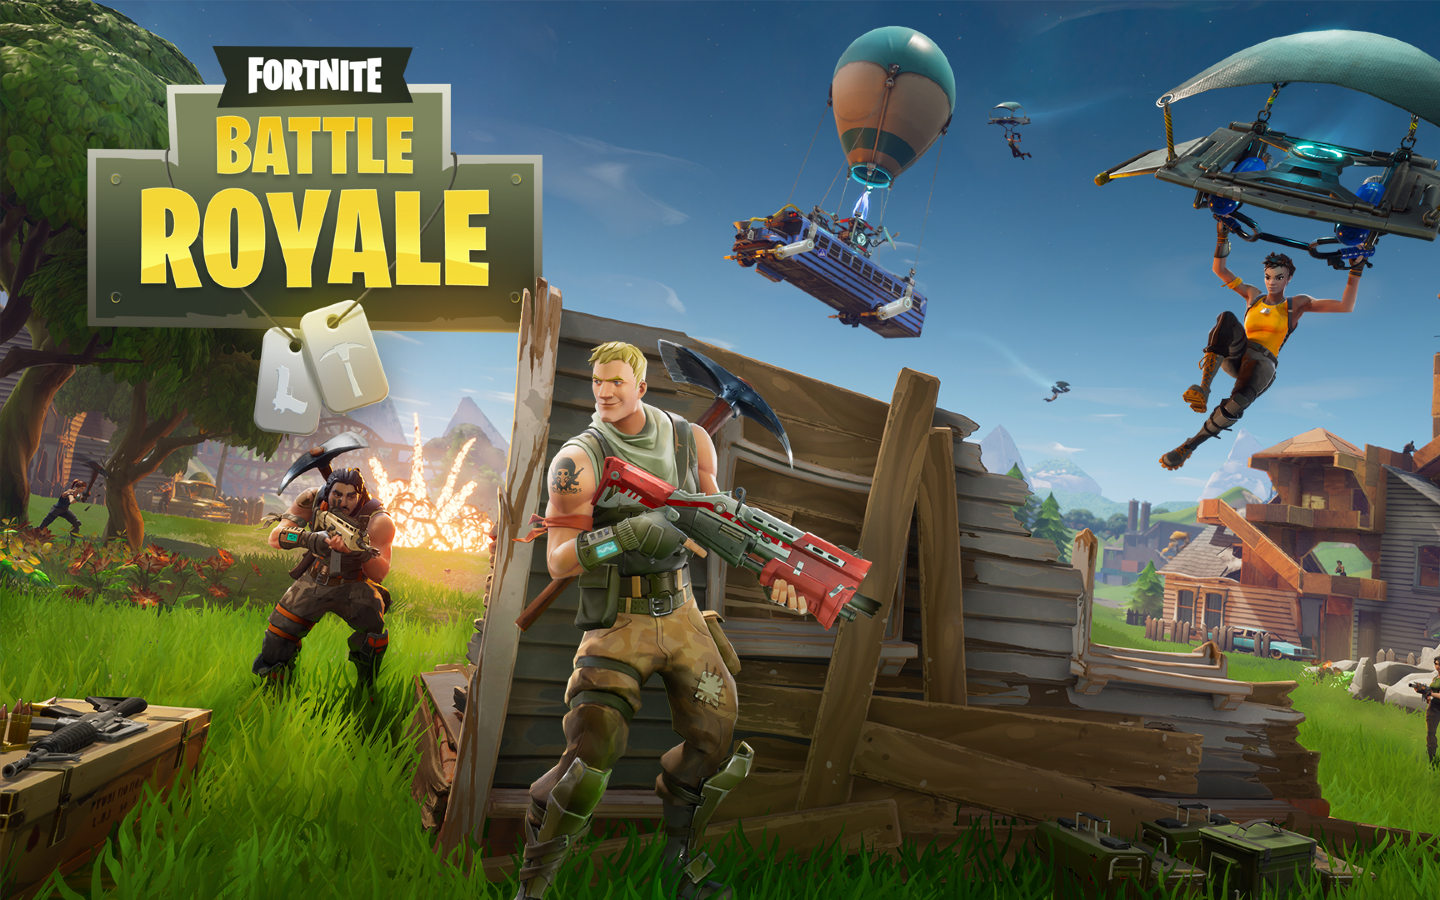 Fortnite Battle Royale Full HD Wallpaper 1440x900